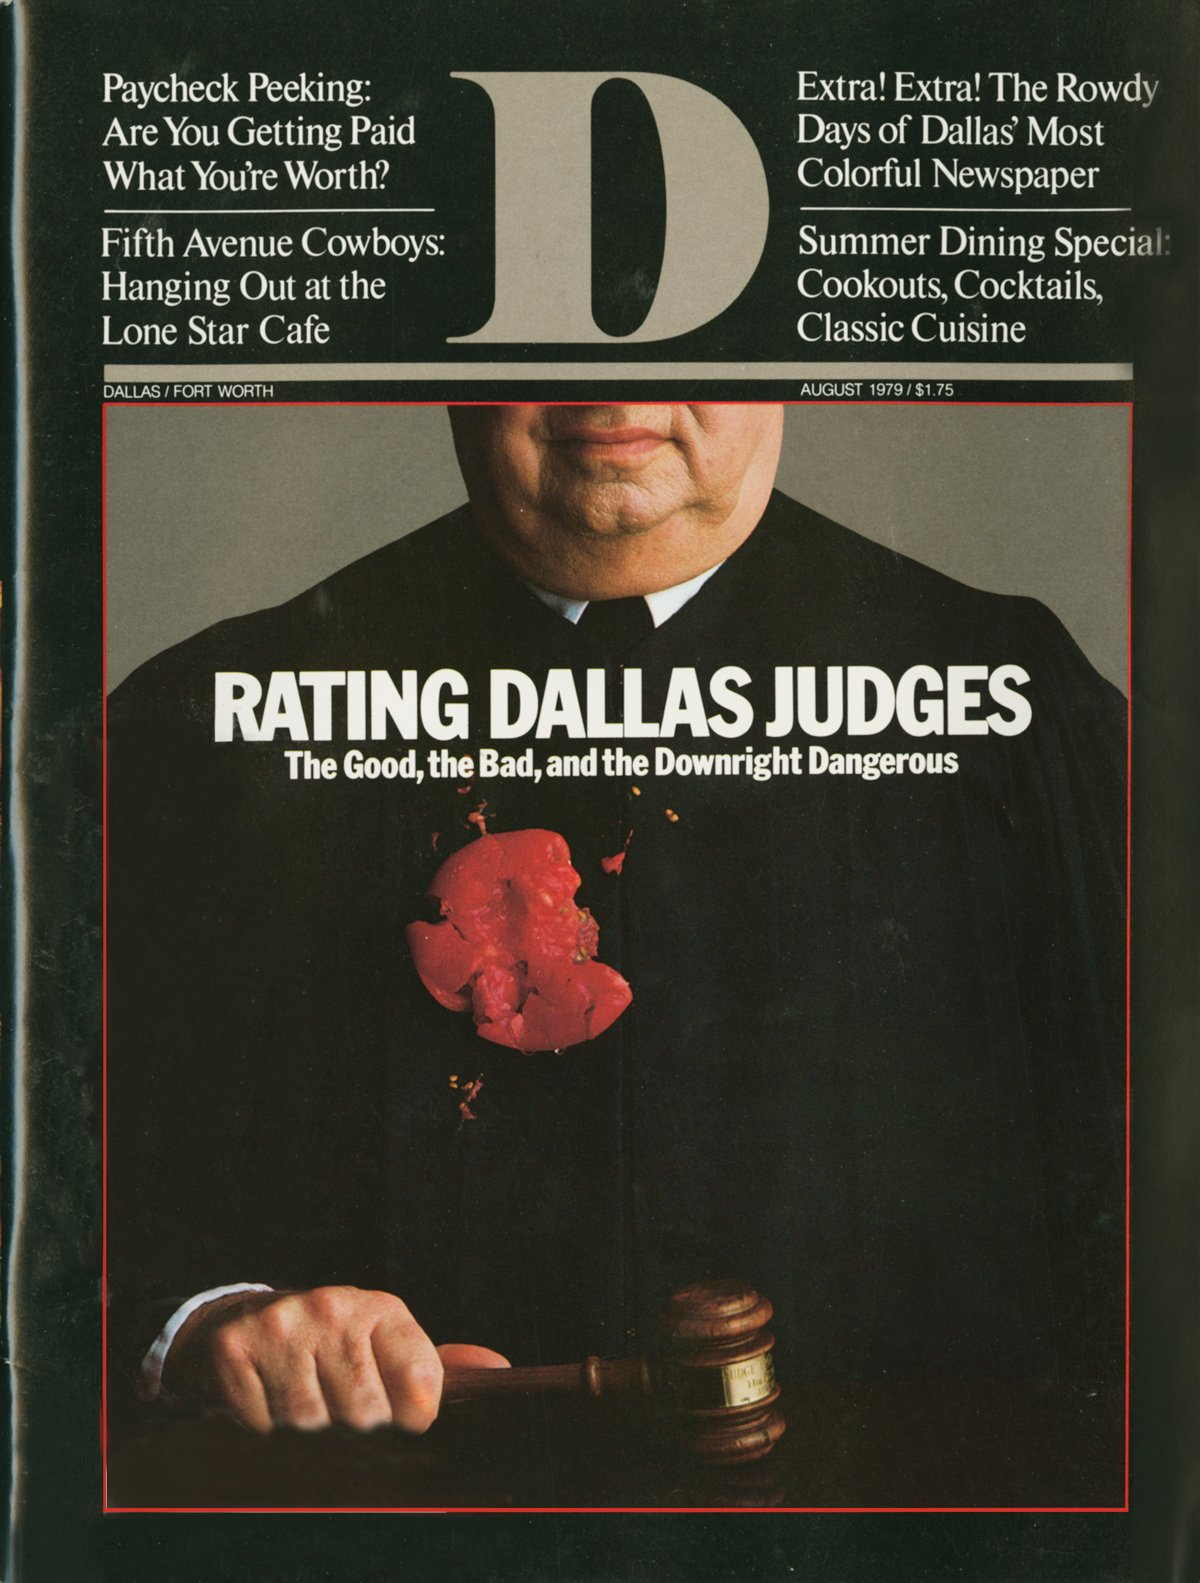 August 1979 cover